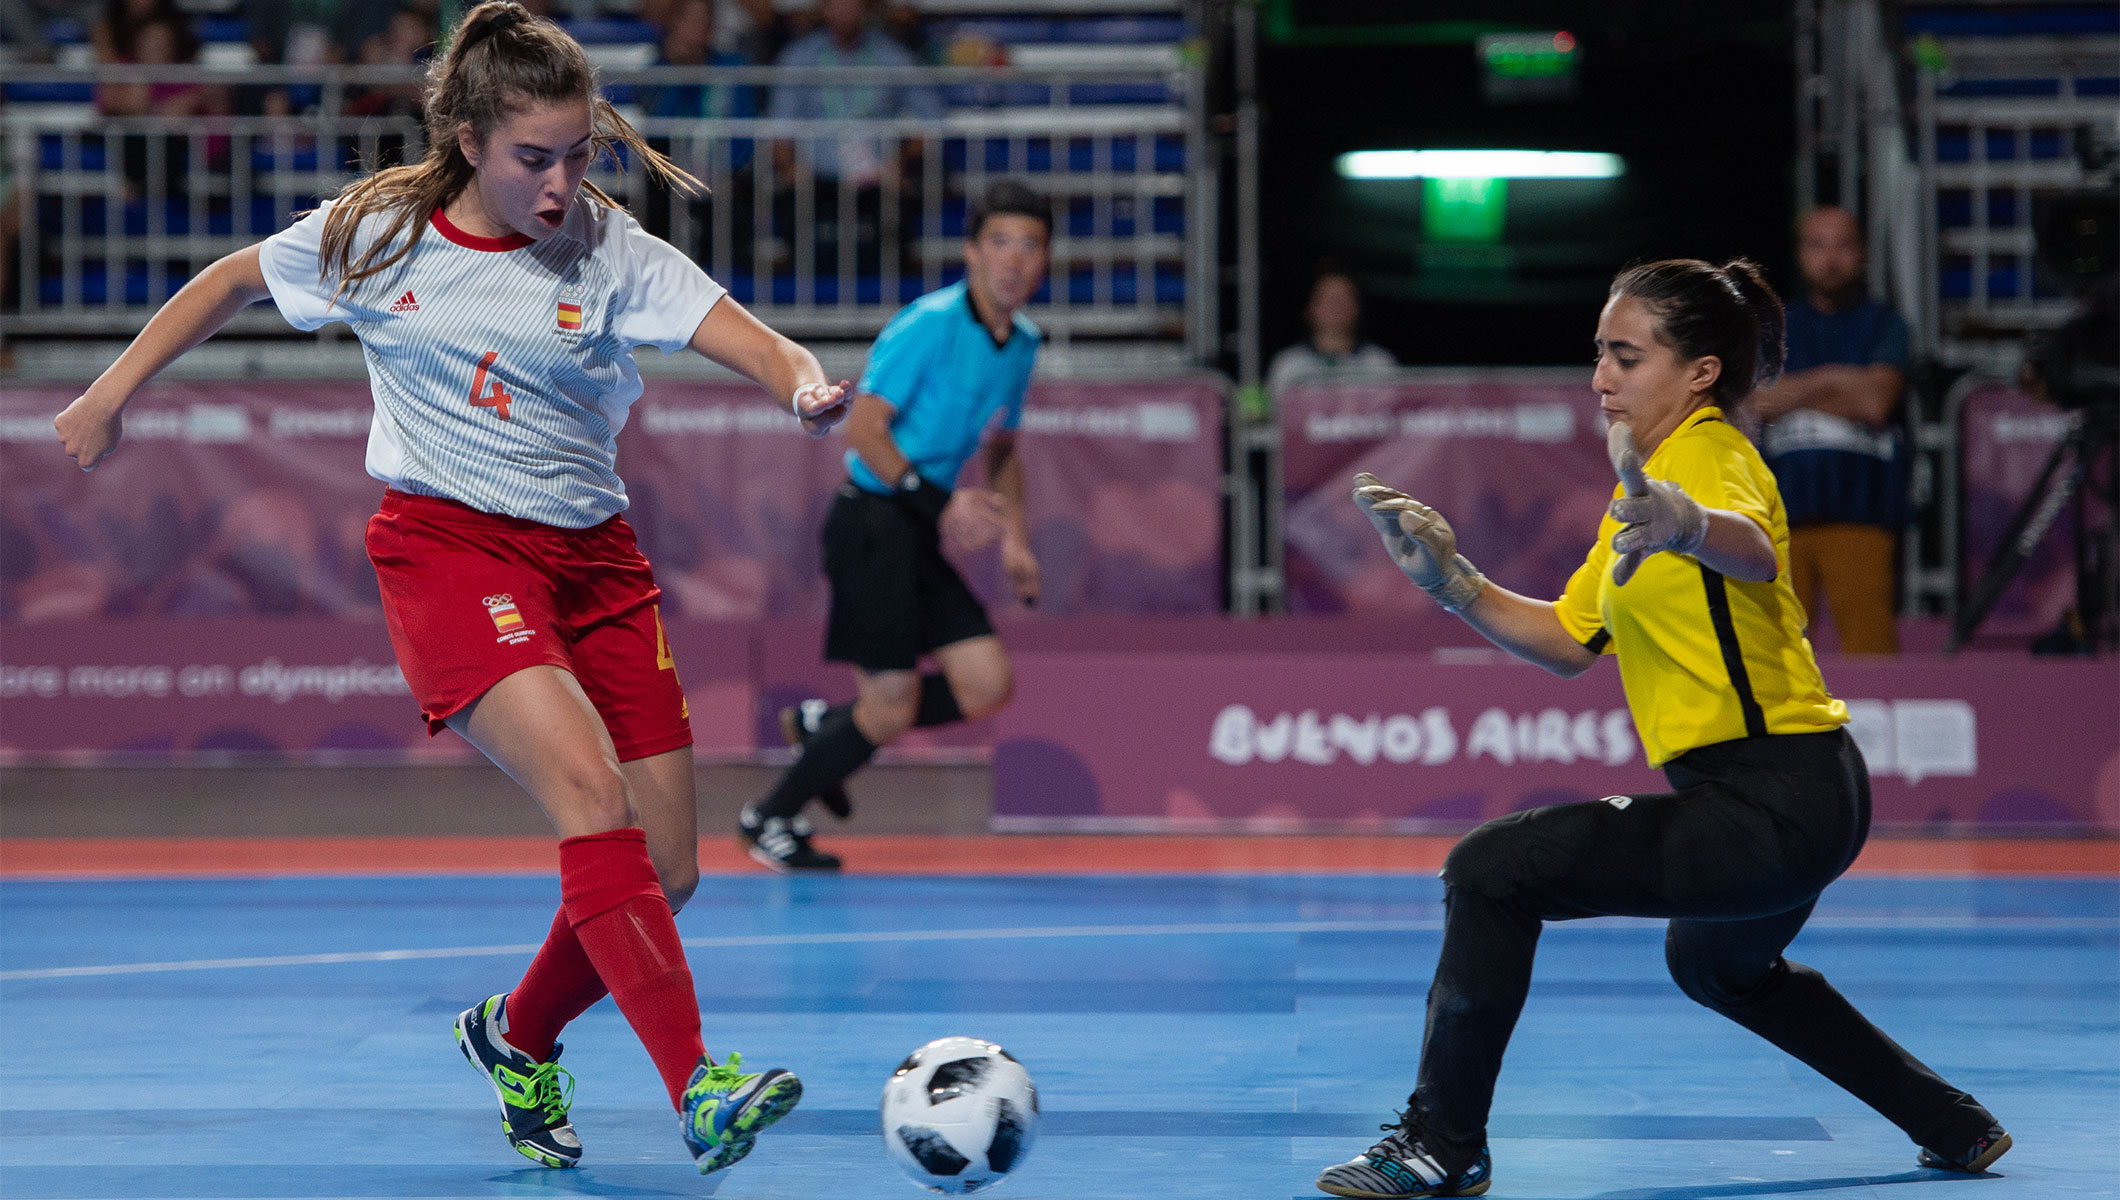 Goals galore as women s futsal takes historic step - Olympic News ddcbe816ee